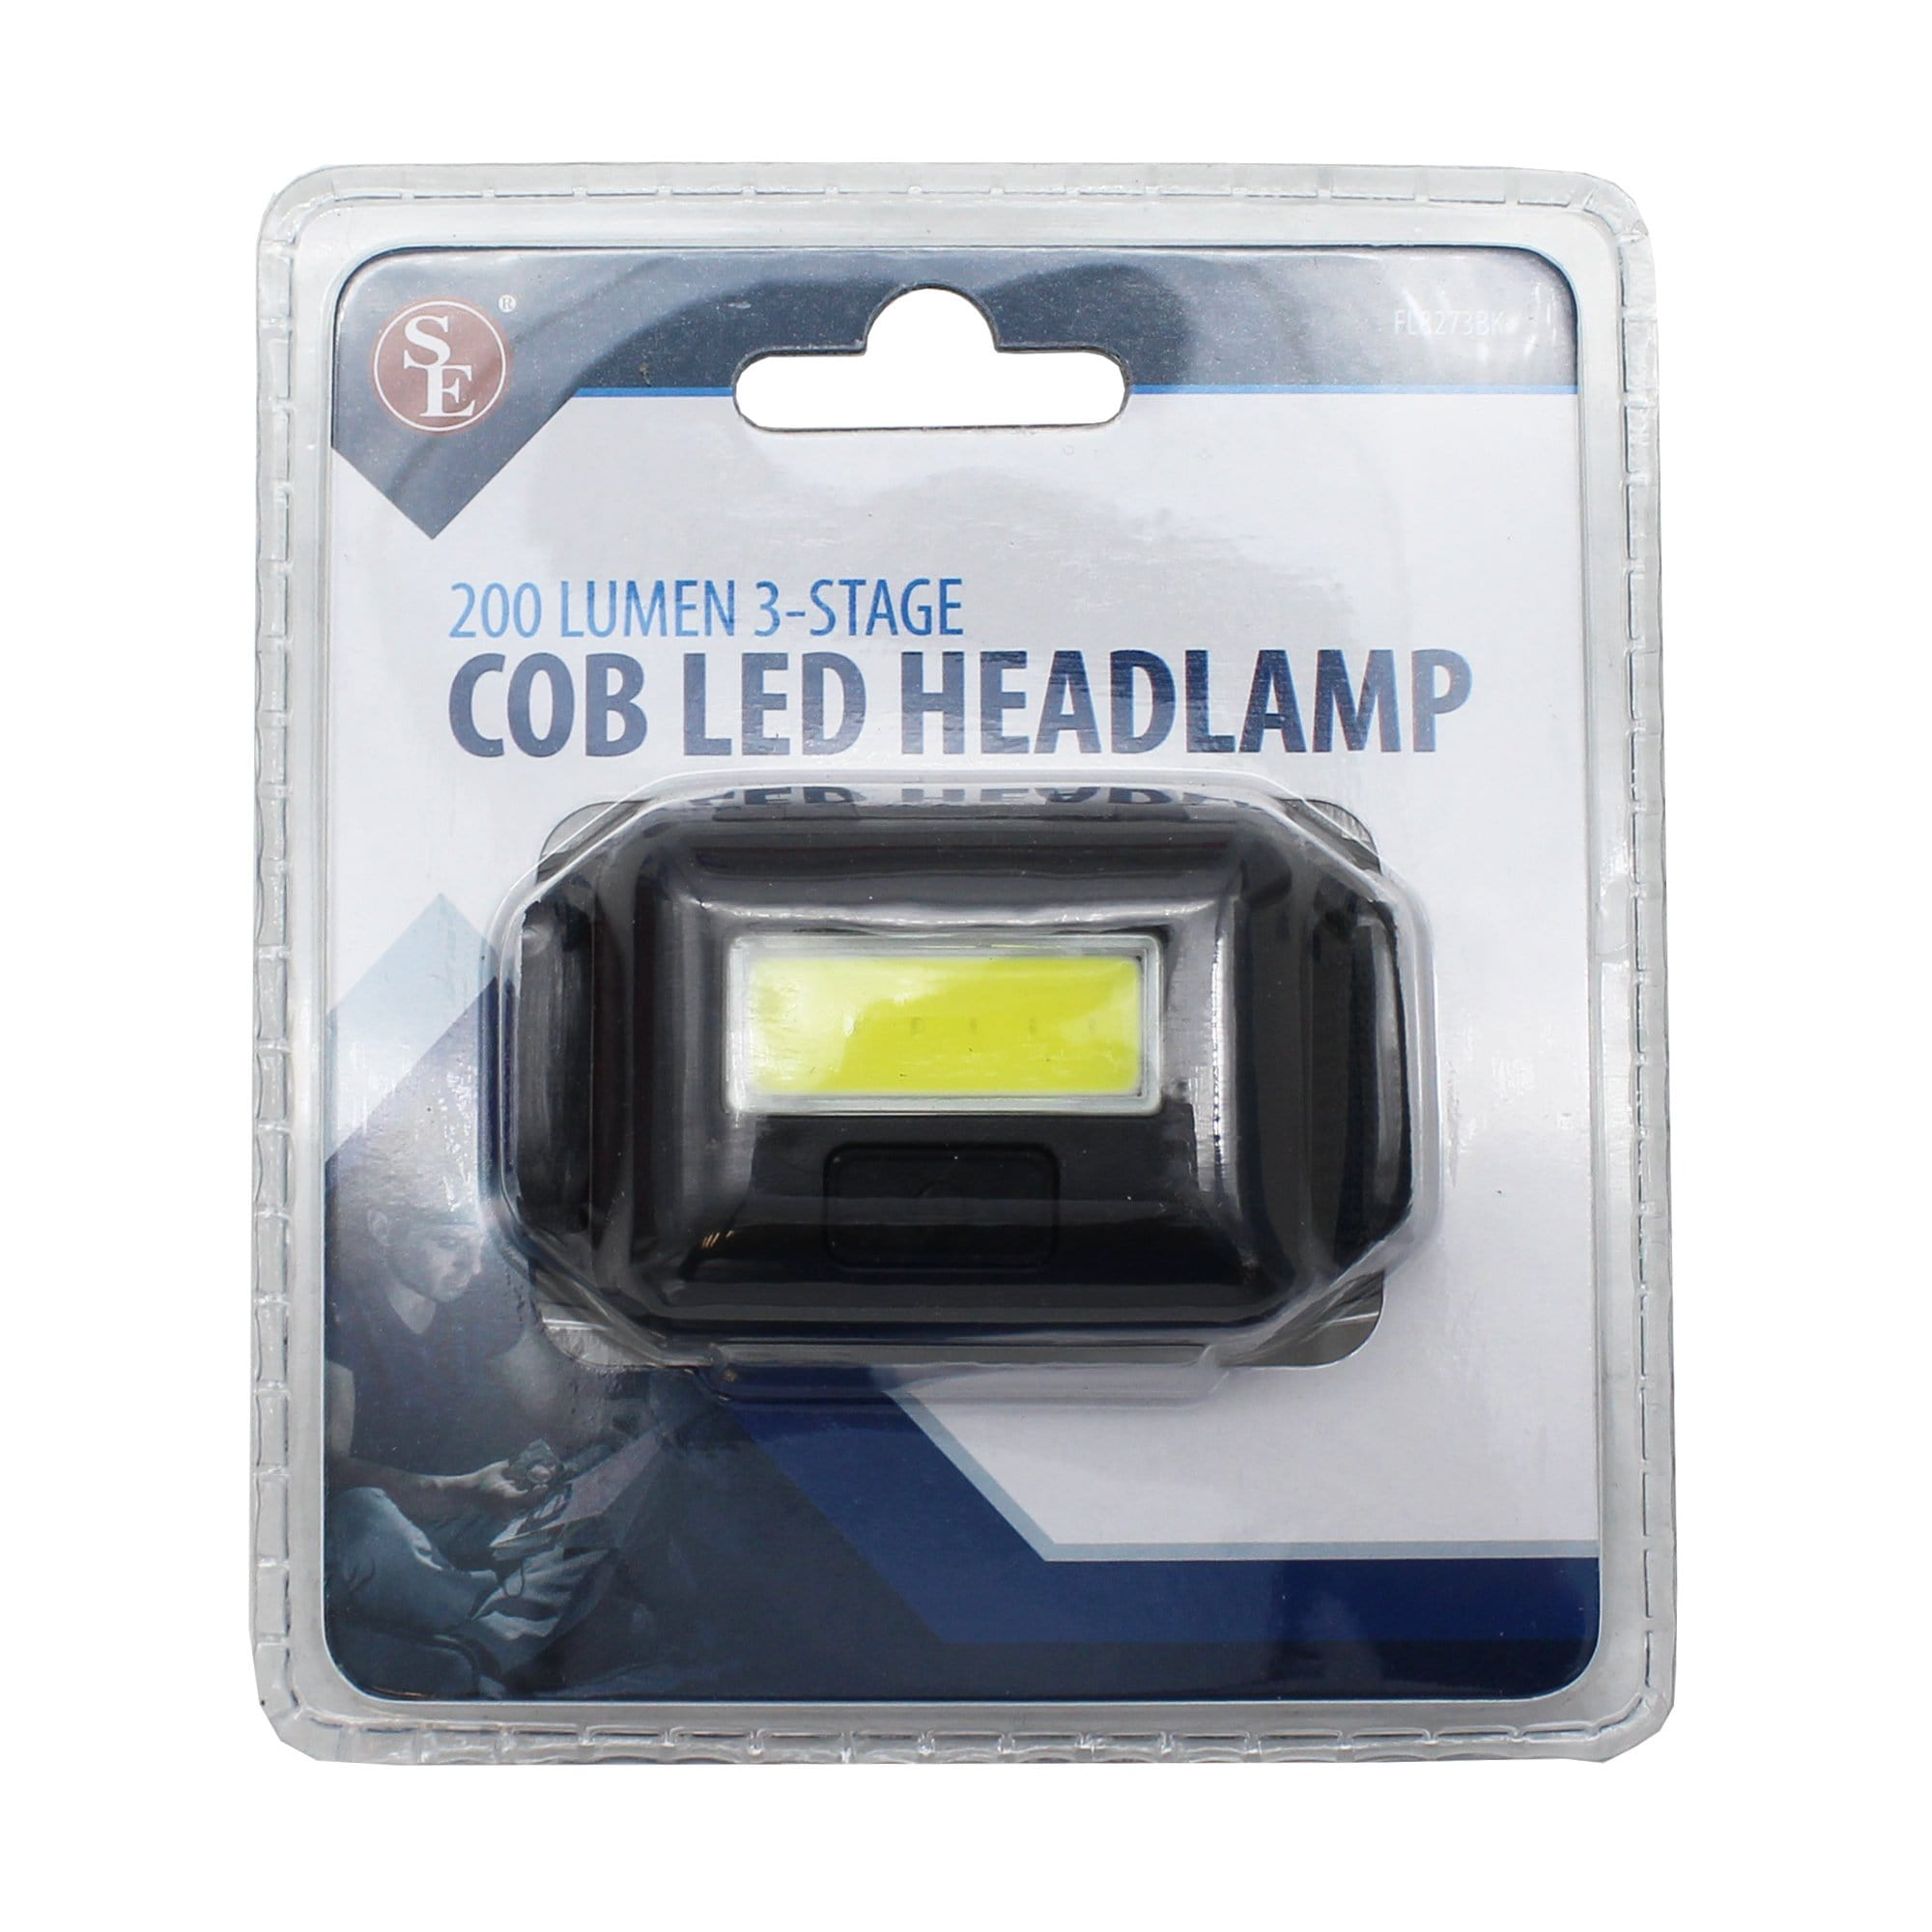 COB LED Headlamp - 200 Lumen / 3 Watt Energy Efficient